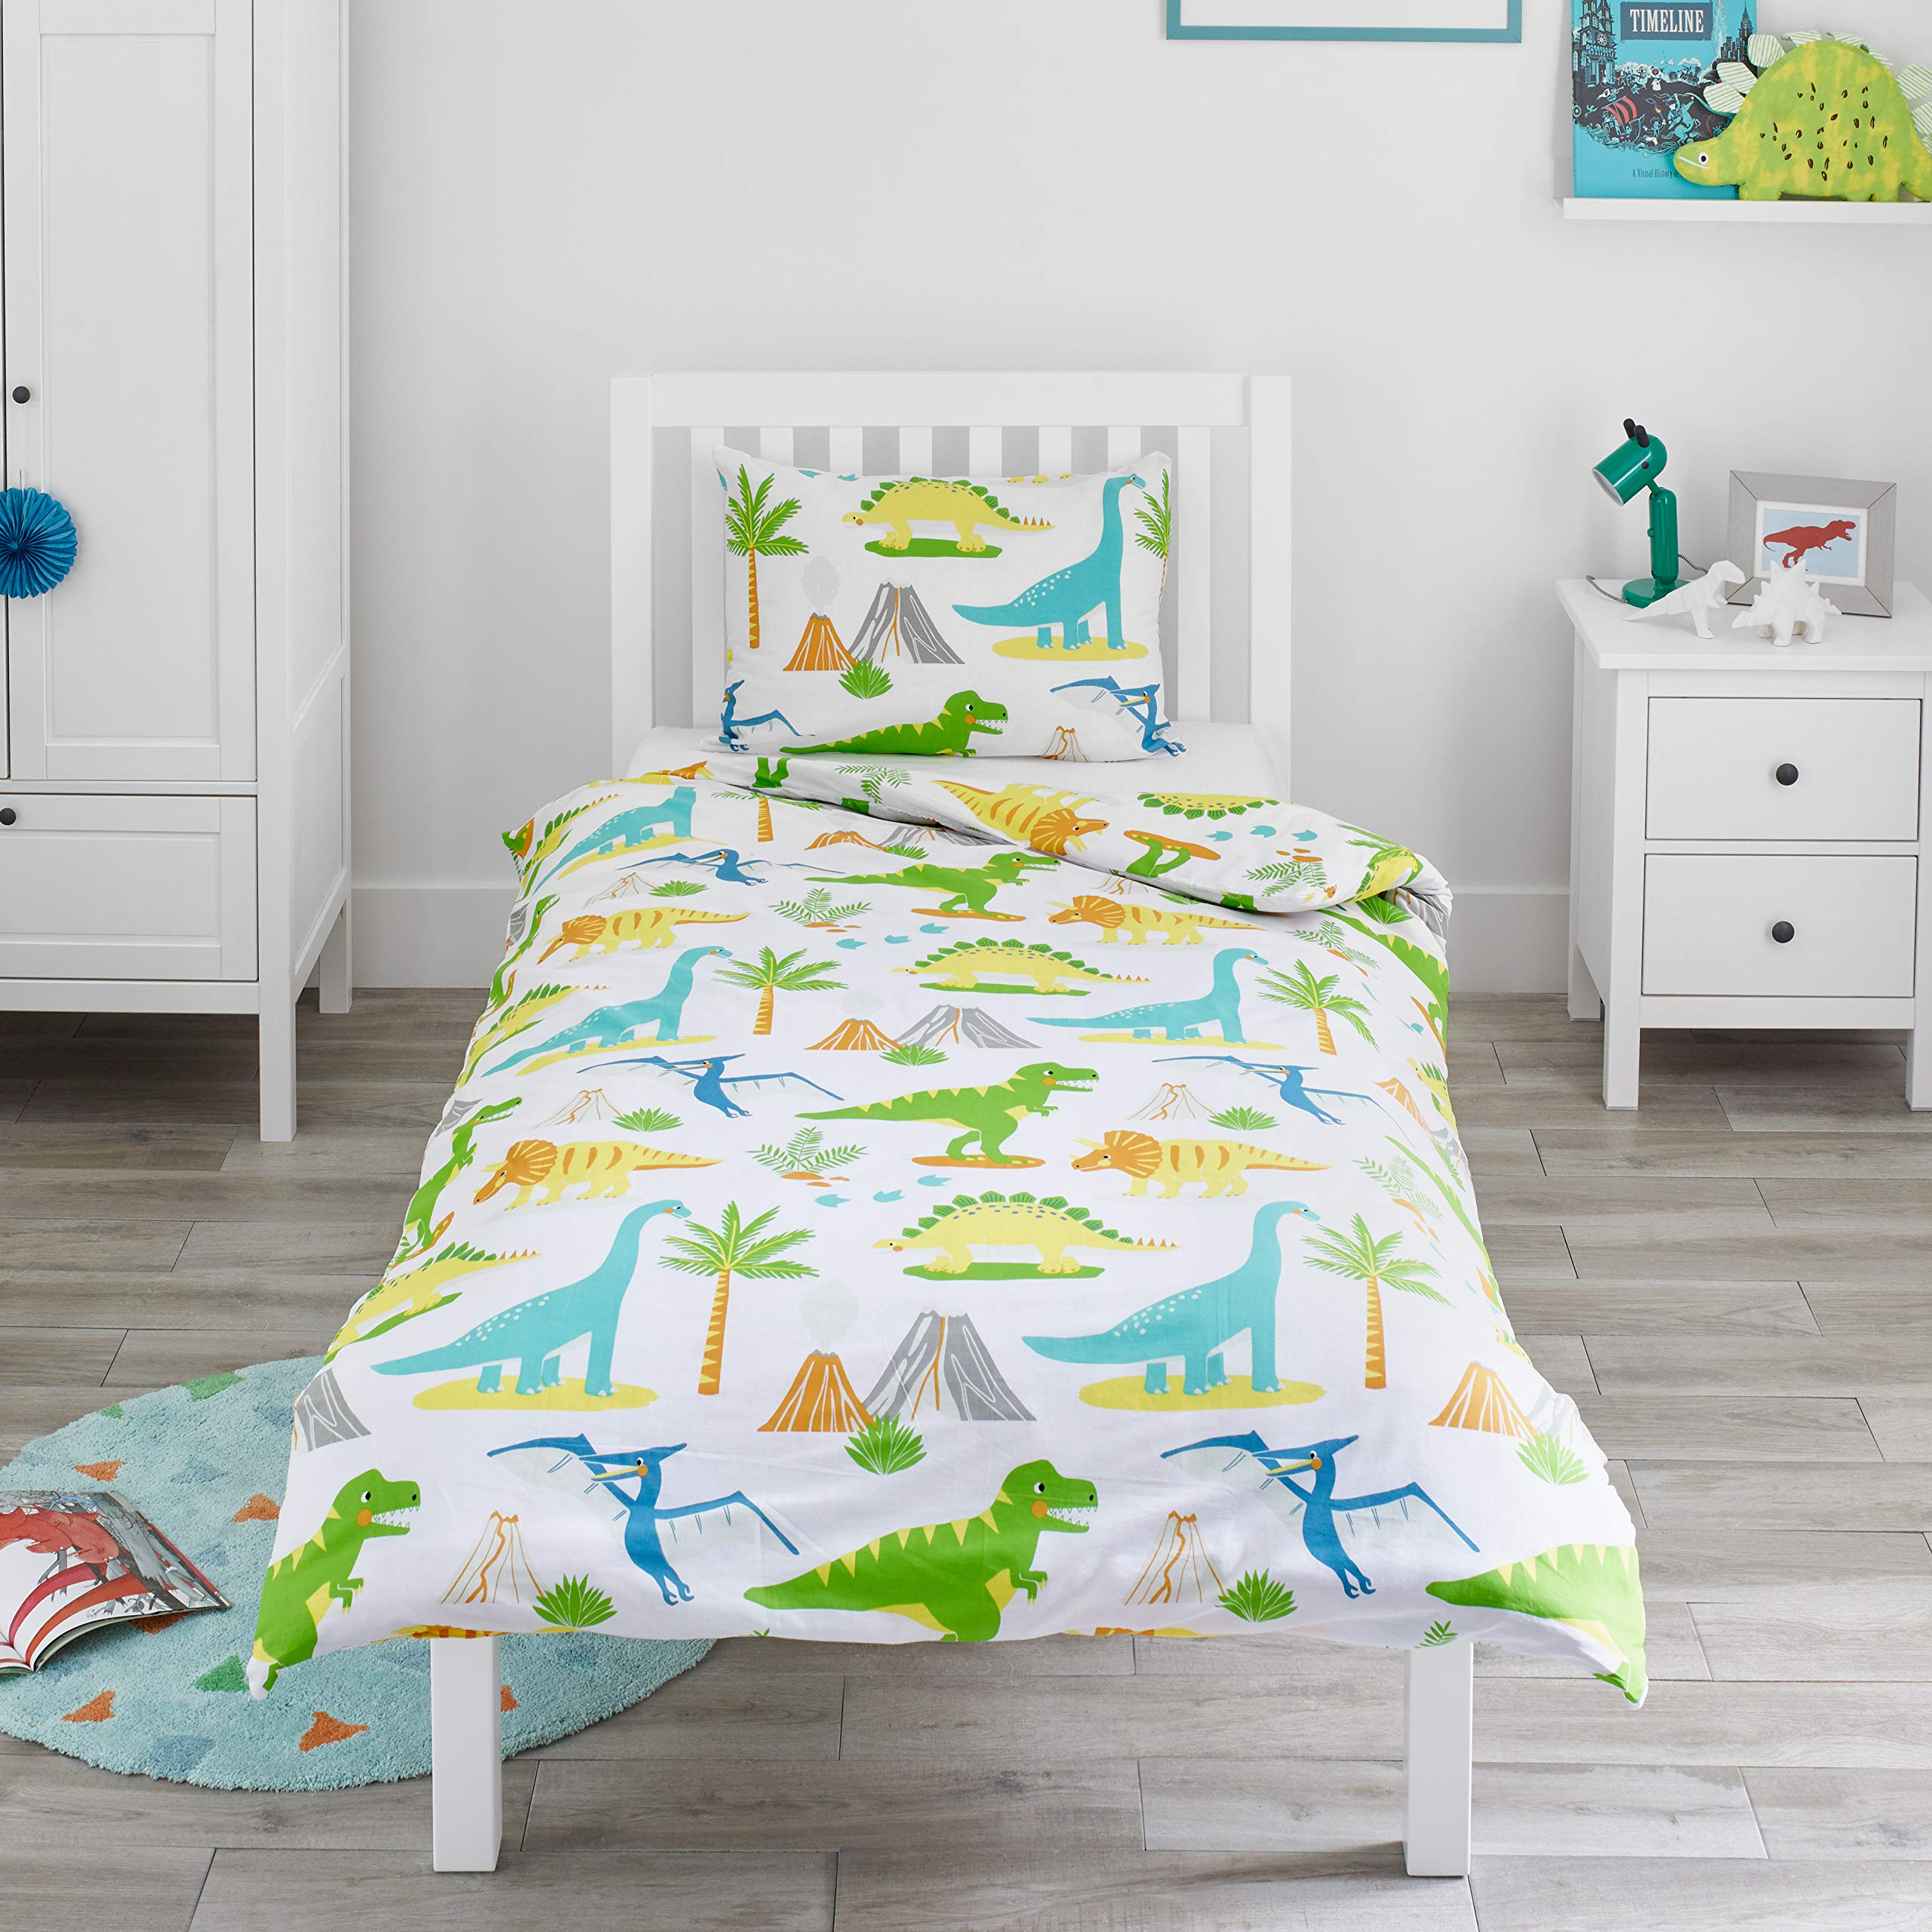 Luxury Nursery Baby Toddler Junior Cot Bed anti-Allergy Duvet Quilt or Pillow by CosyWinks/® 4.5 tog